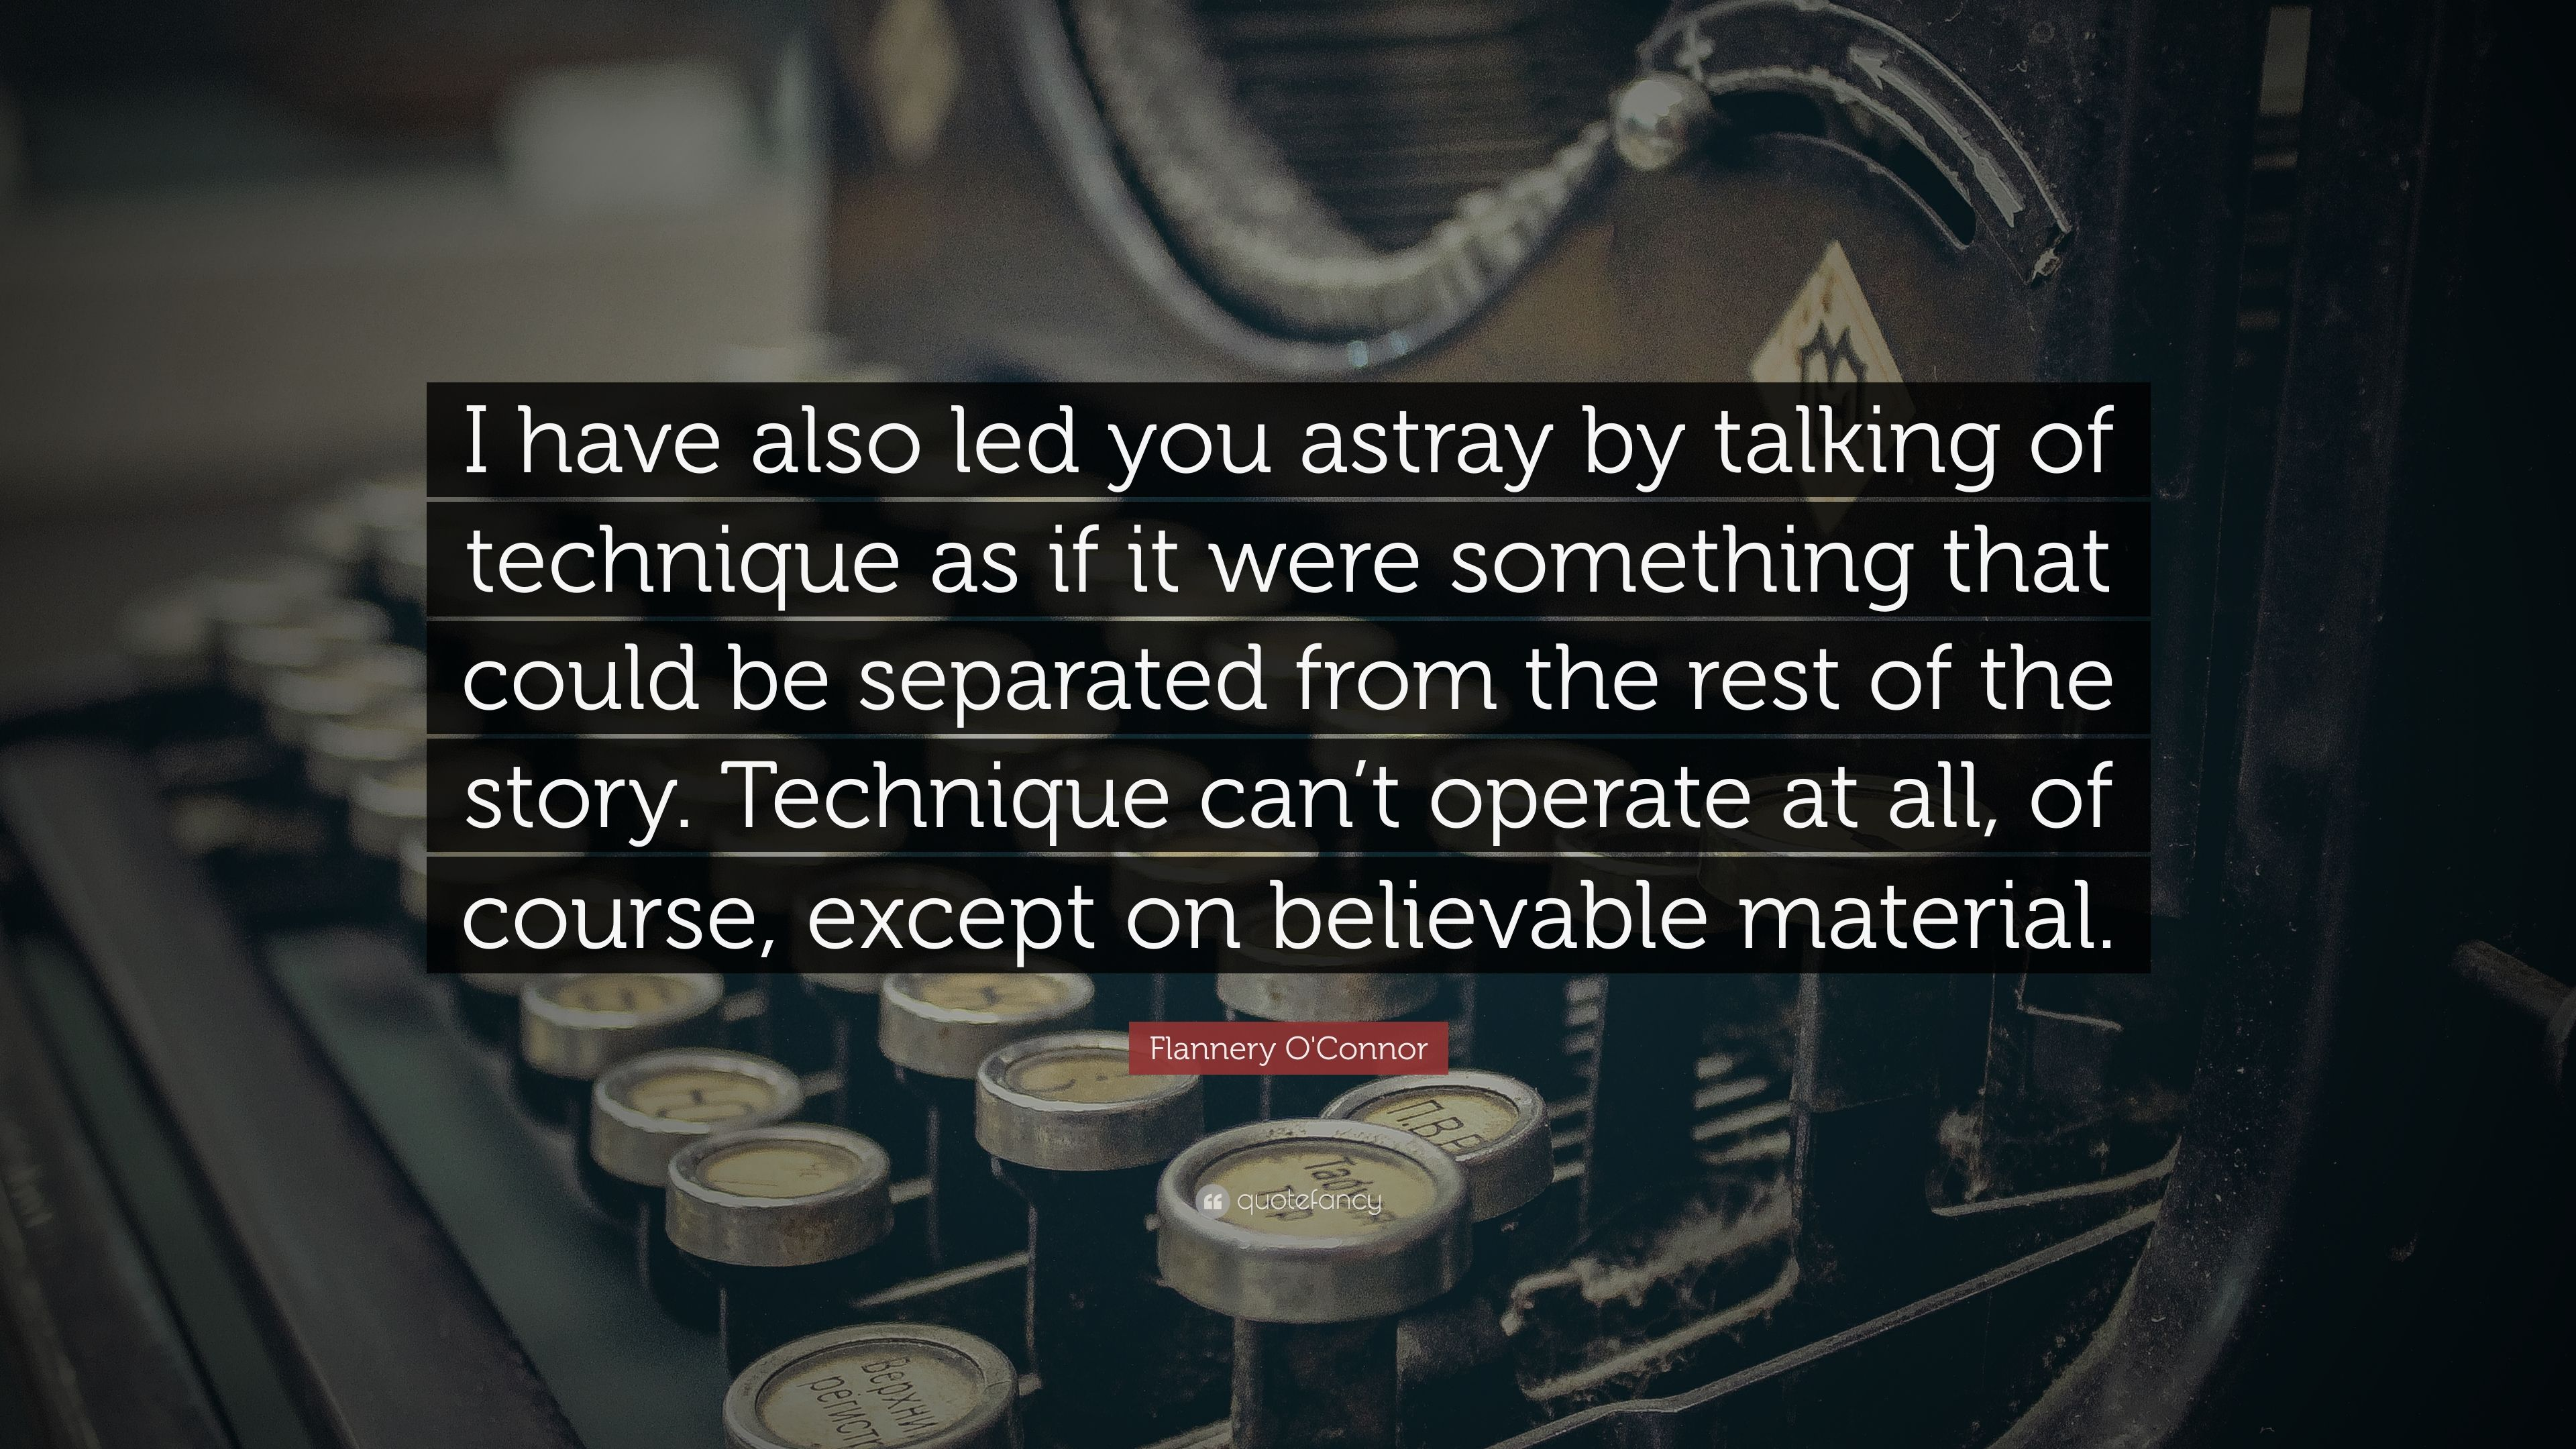 Led You Astray Flannery O Connor Quote I Have Also Led You Astray By Talking Of